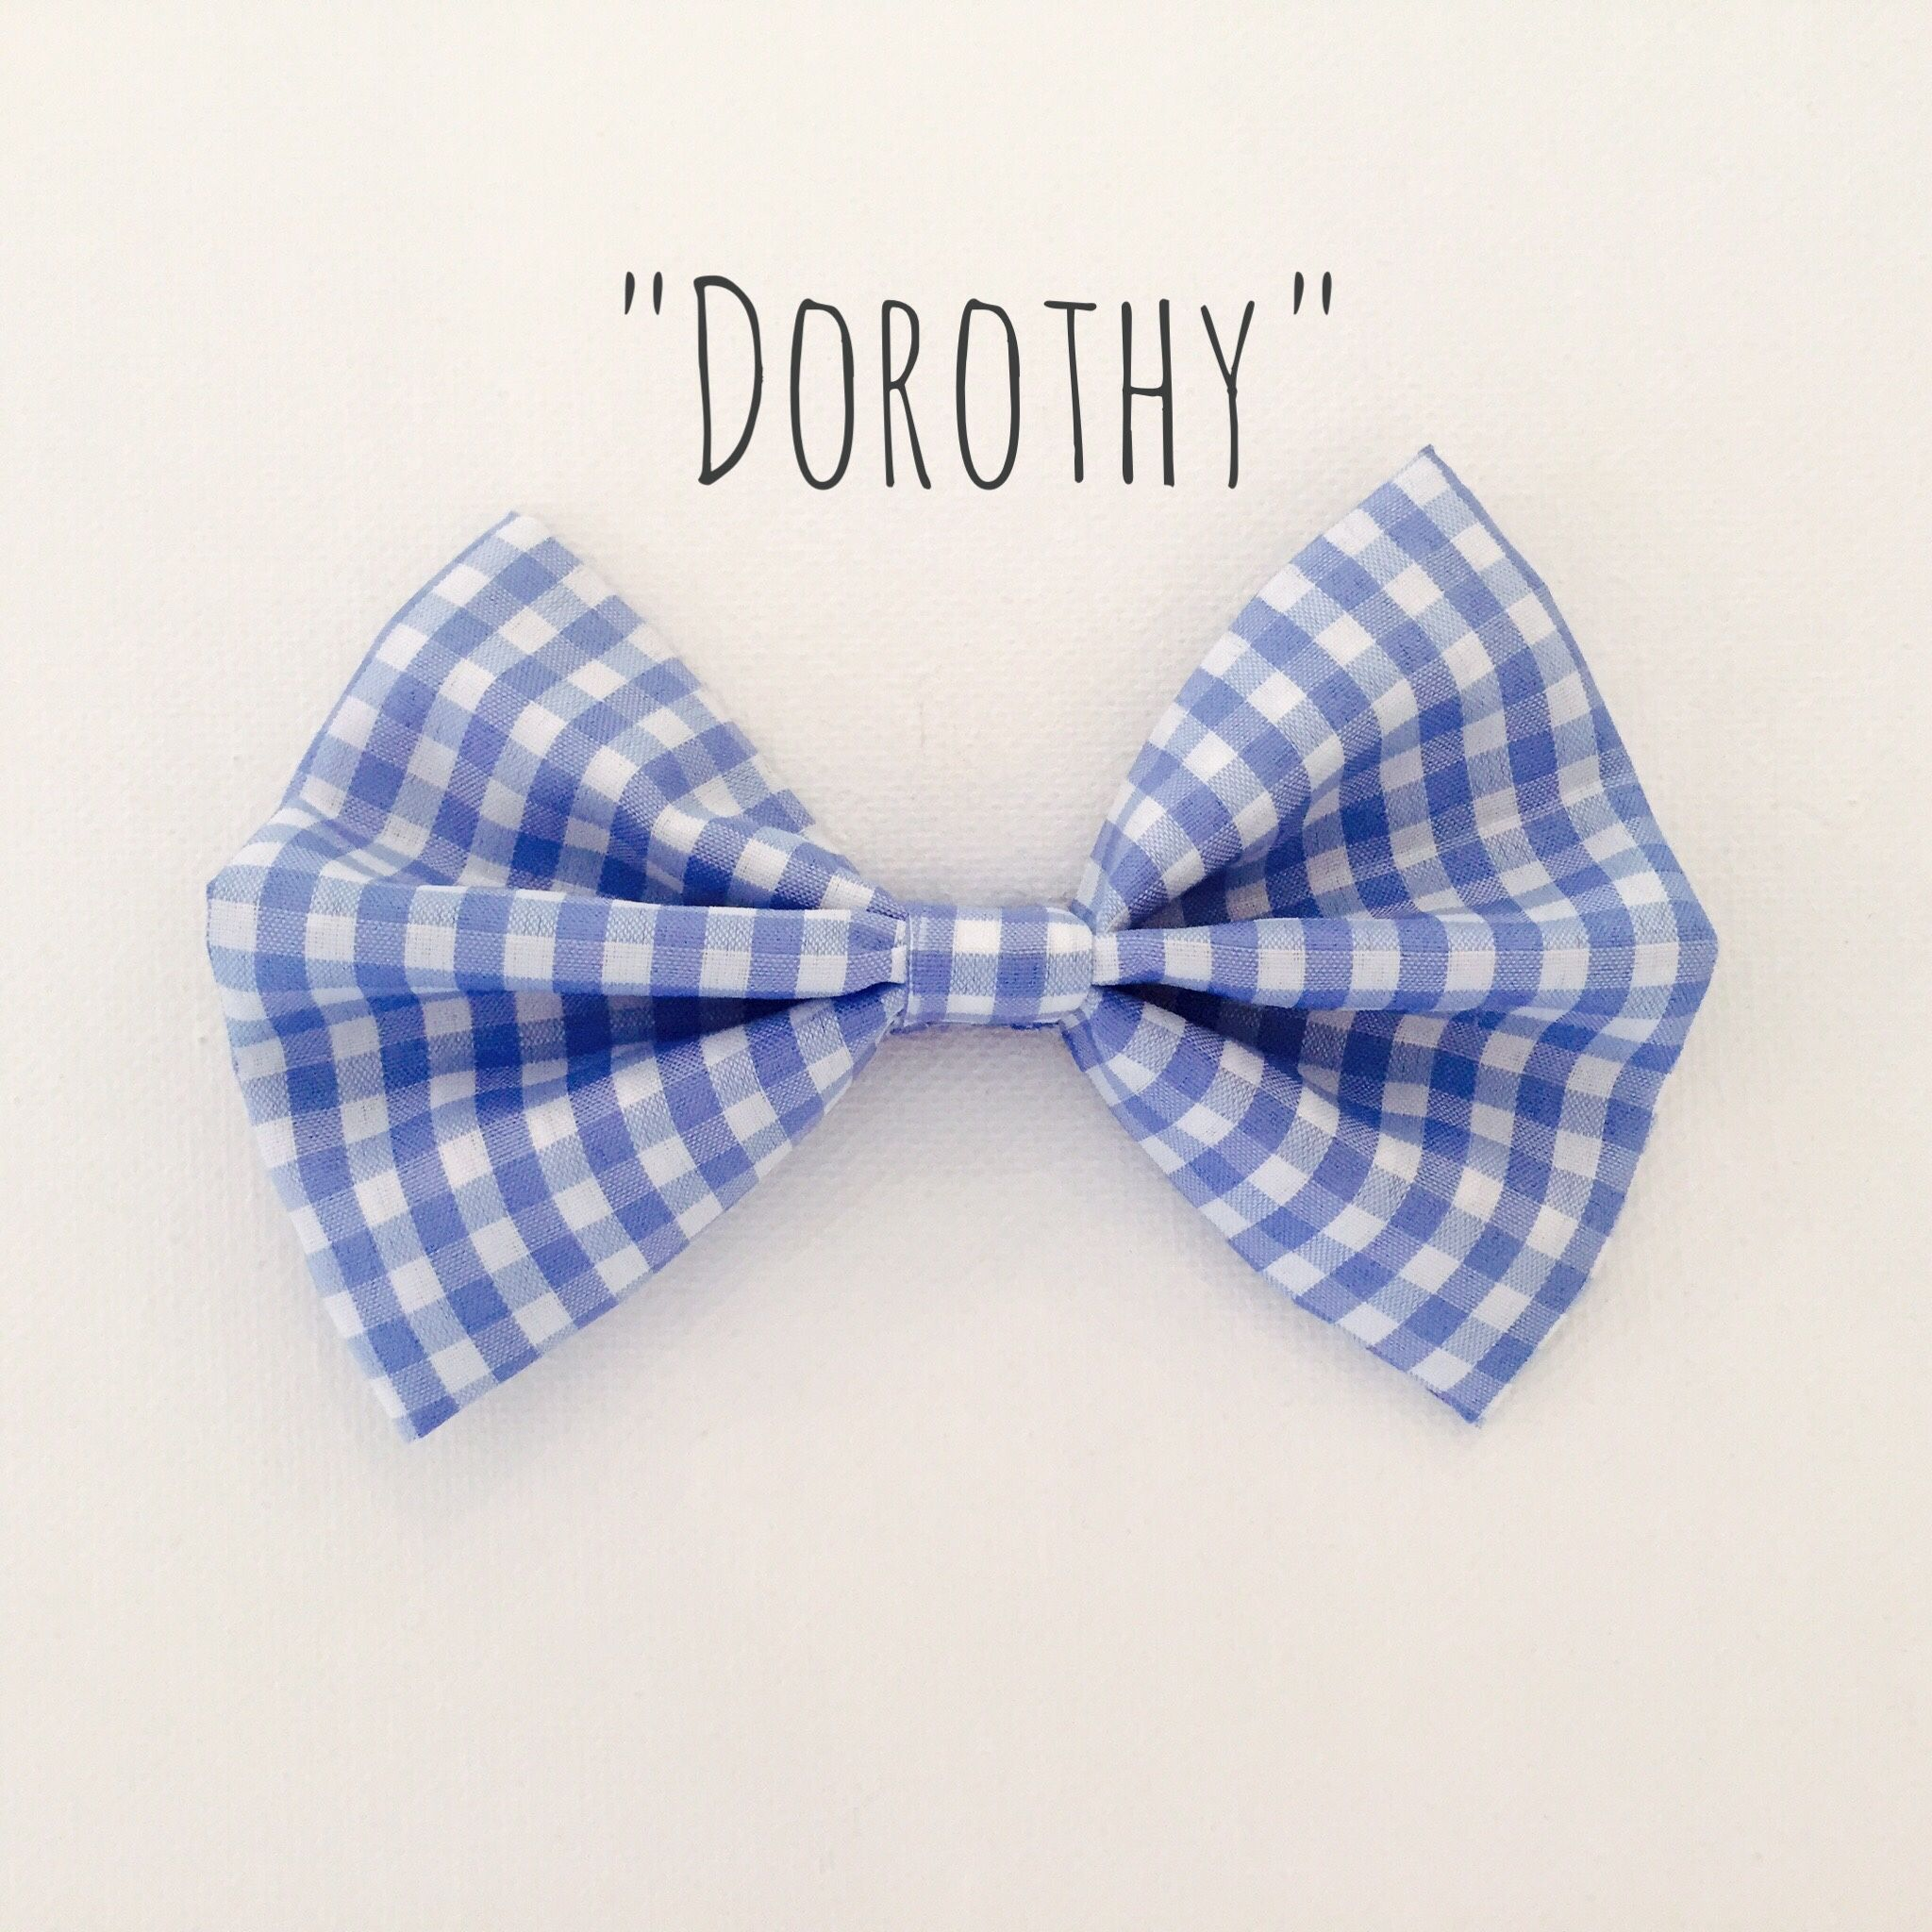 Dorothy And Toto Too Wizard Of Oz Broadway Bows Bows Hair Bows Dorothy